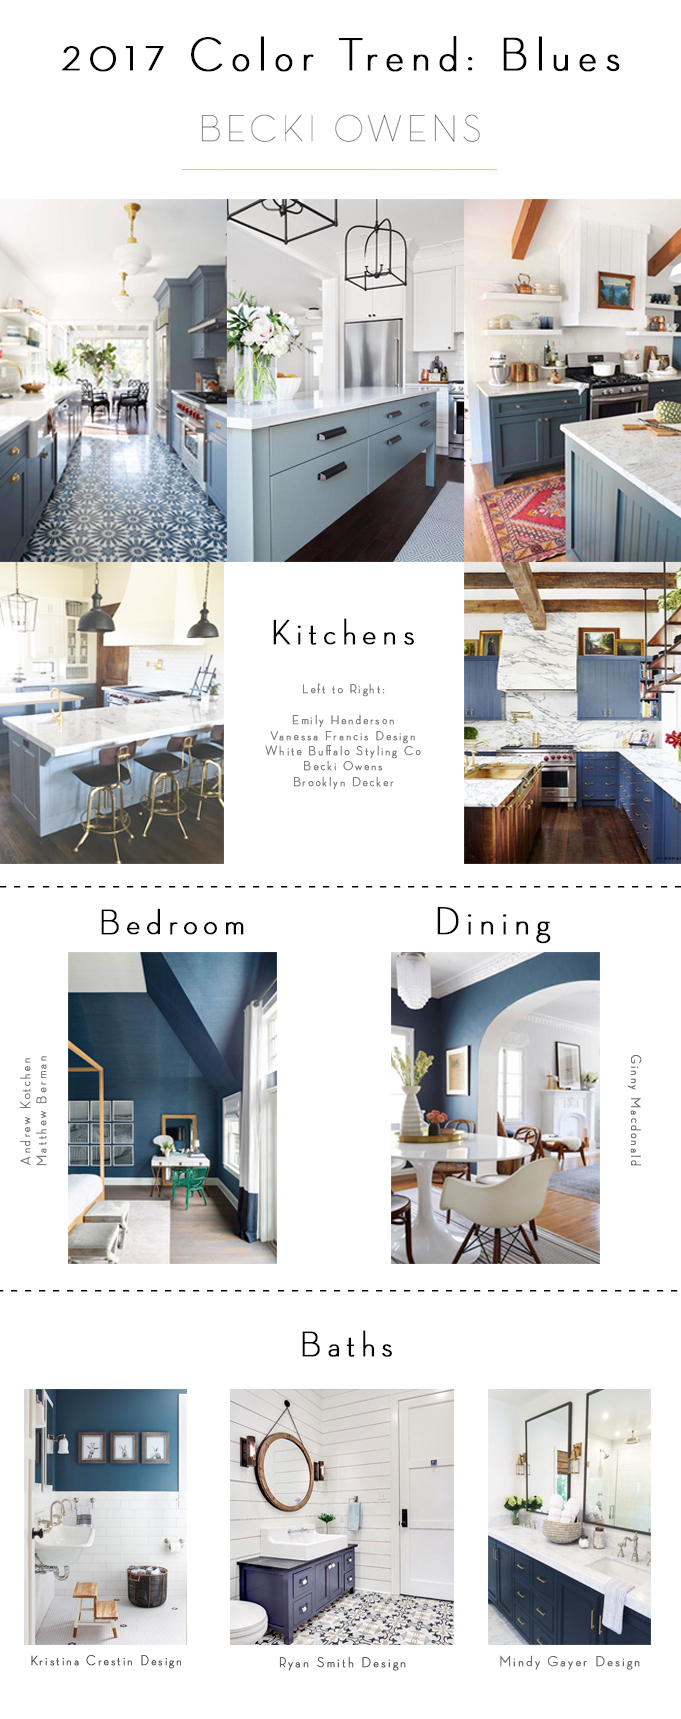 2017 color trend: Blues